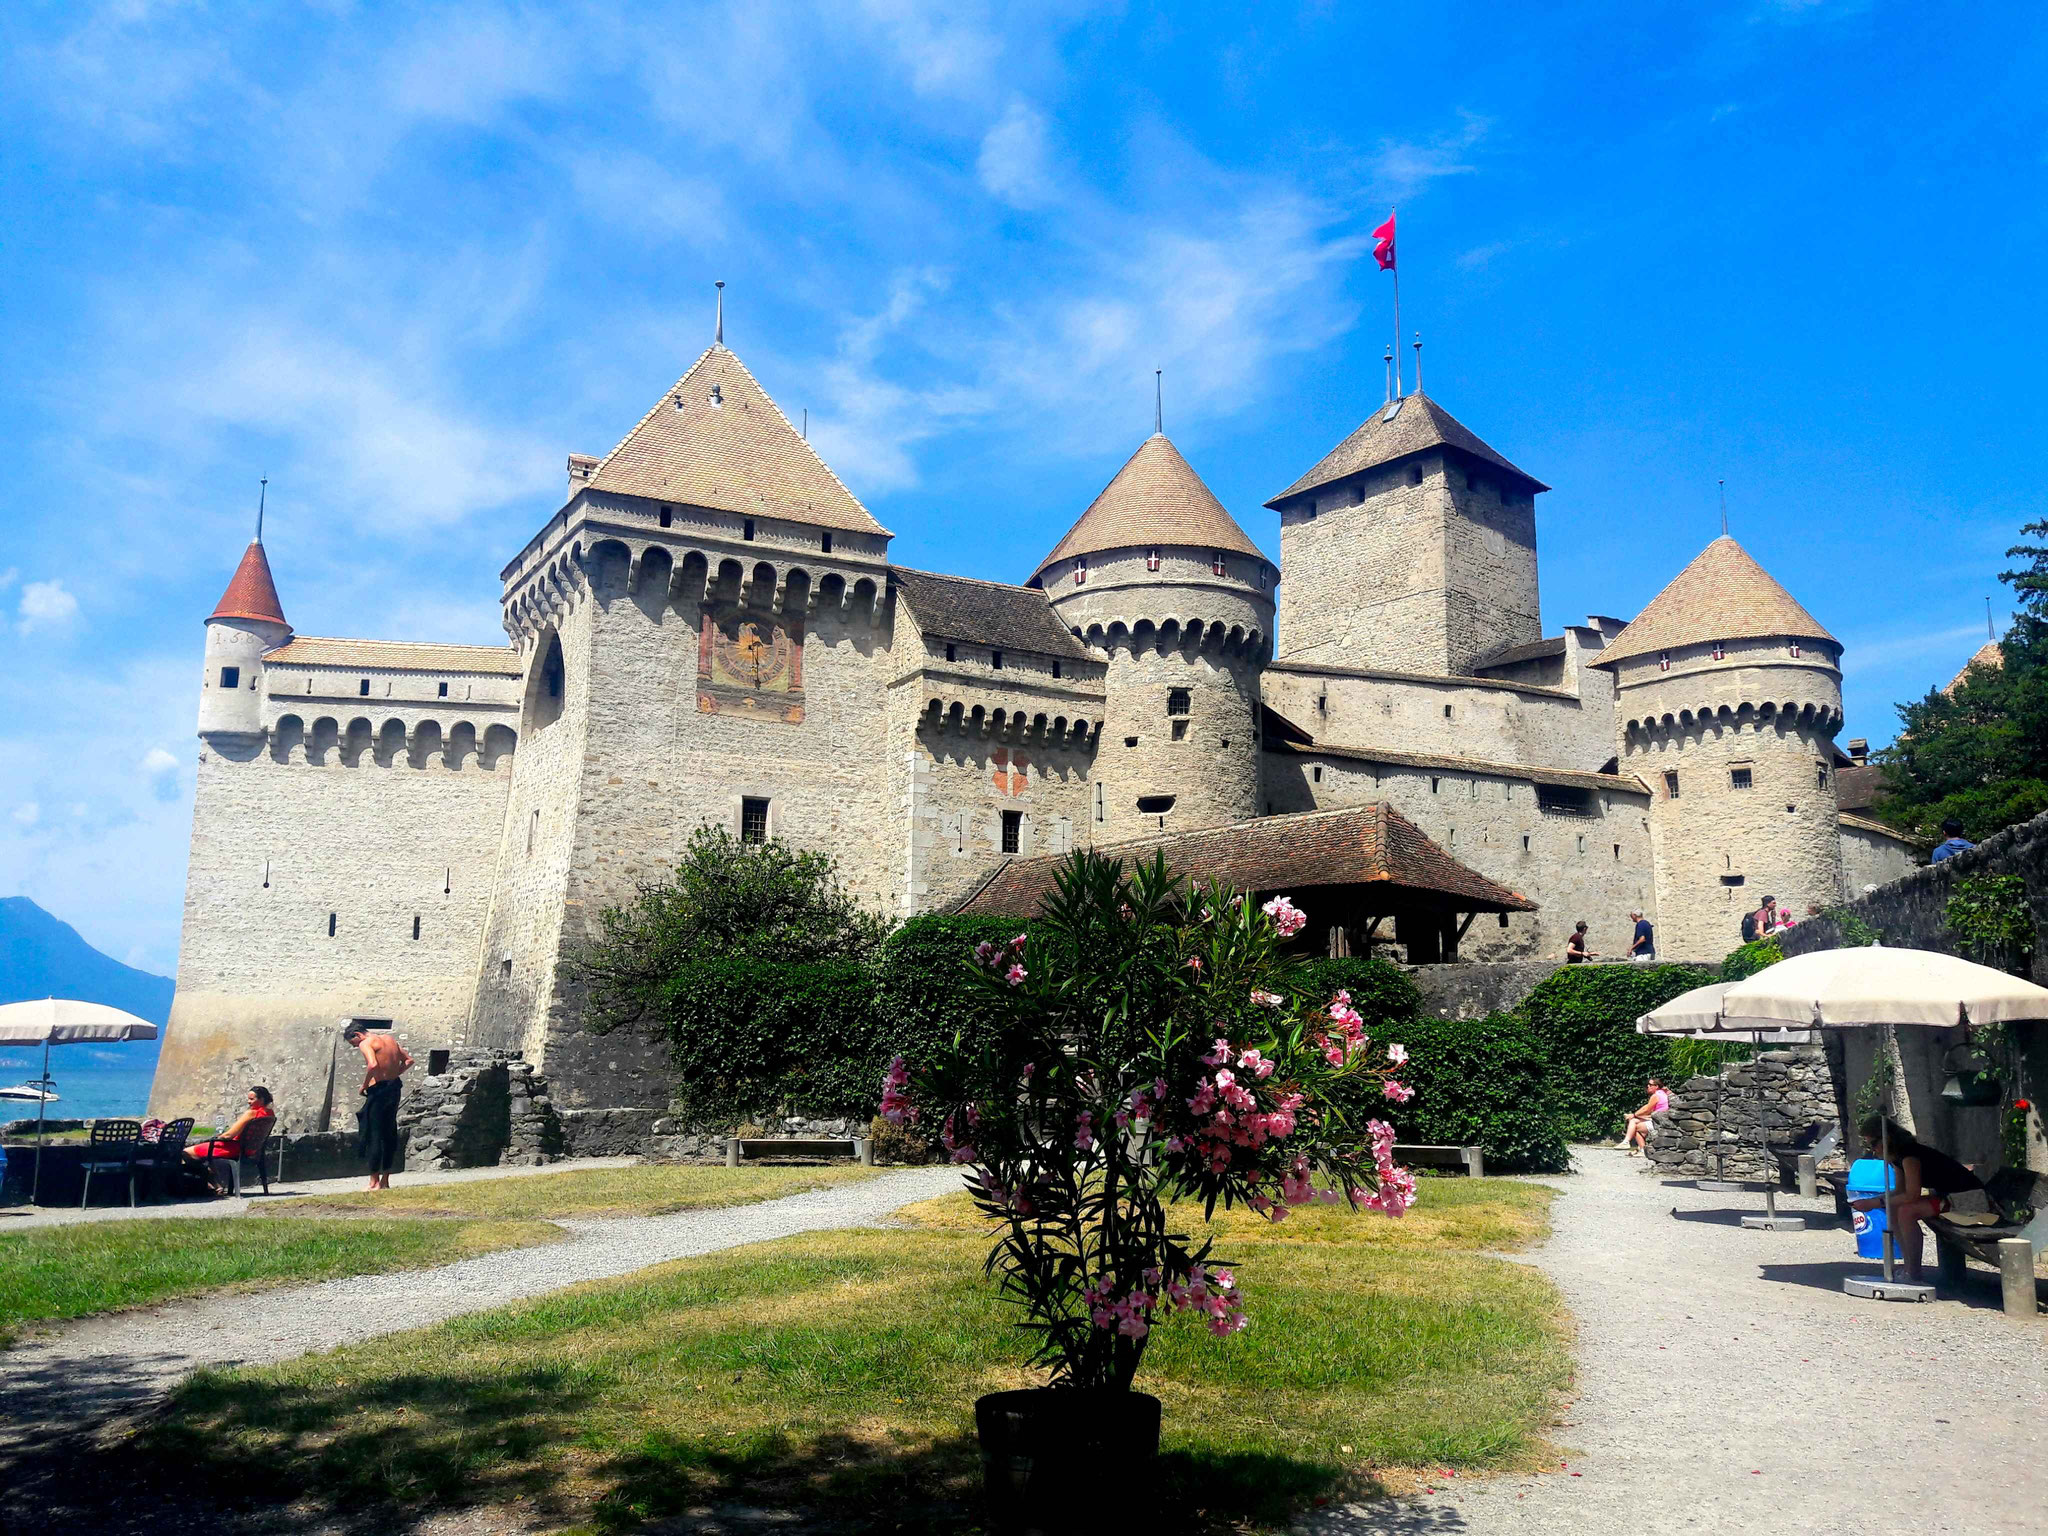 Château de chillon or the chill-on castle in Veytaux on Lake Geneva